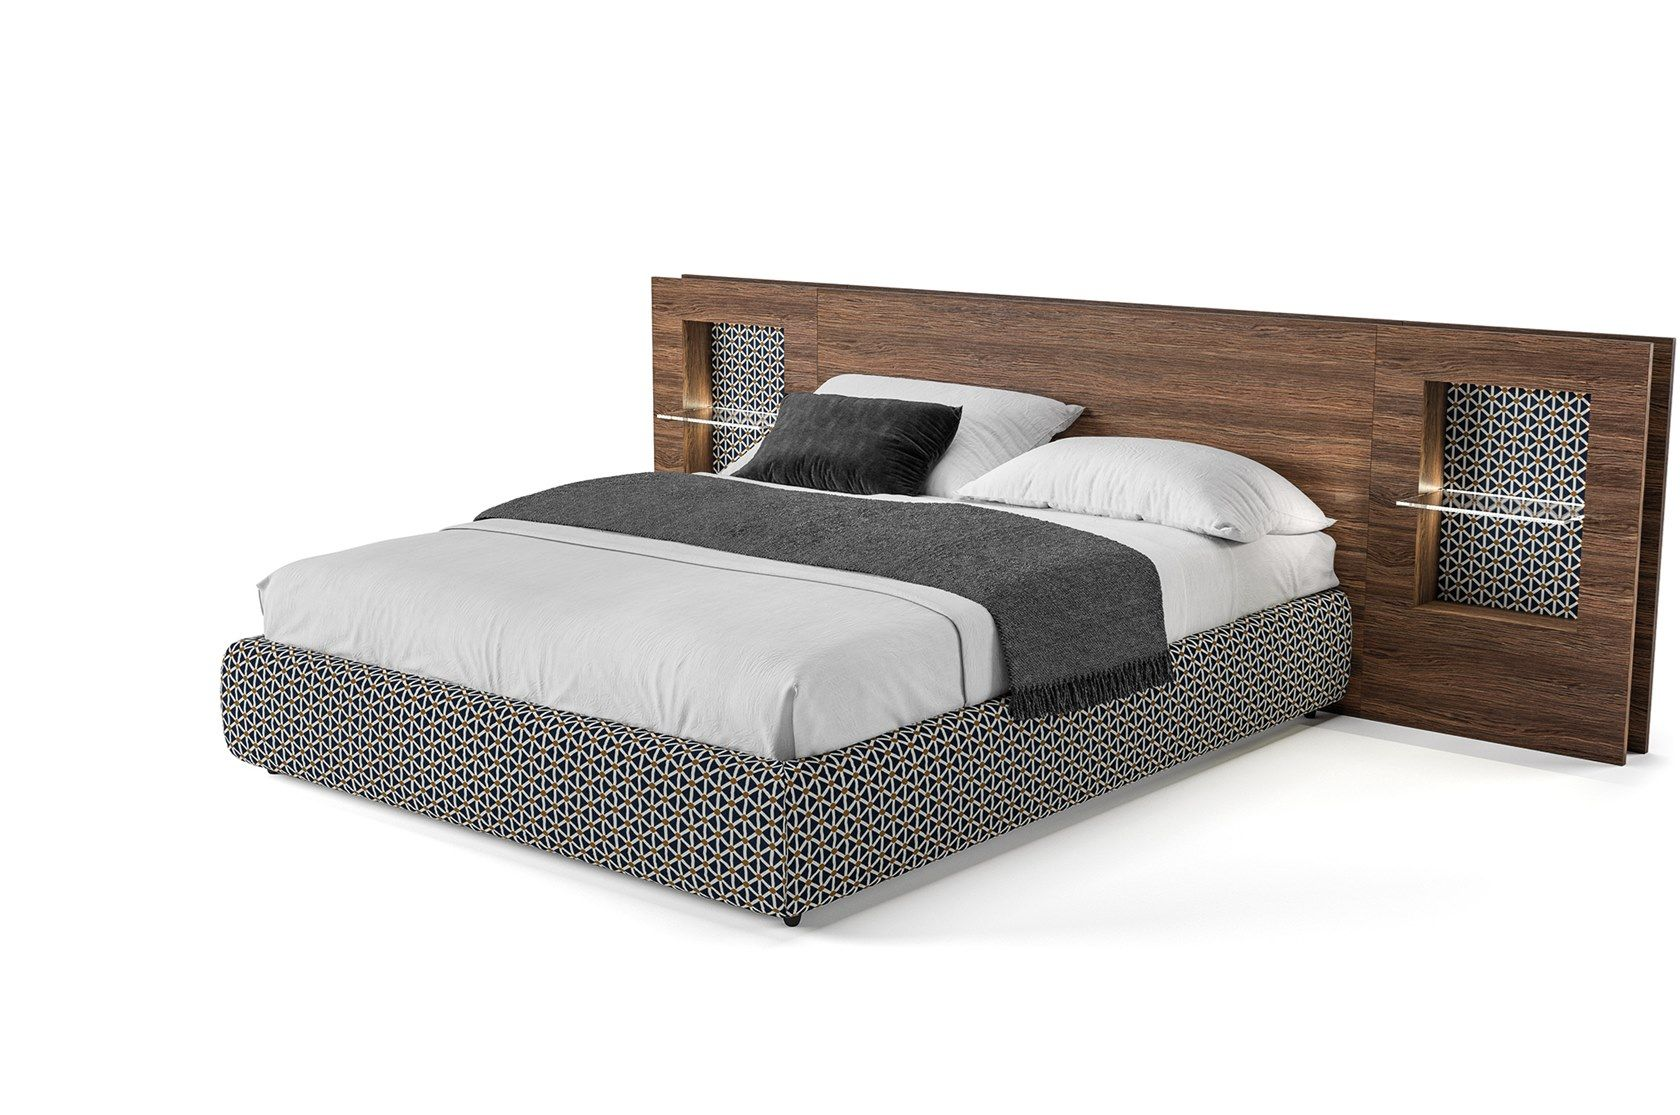 Double Bed With Integrated Nightstands Plan By Tumidei Nightstand Plans Headboards For Beds Bed